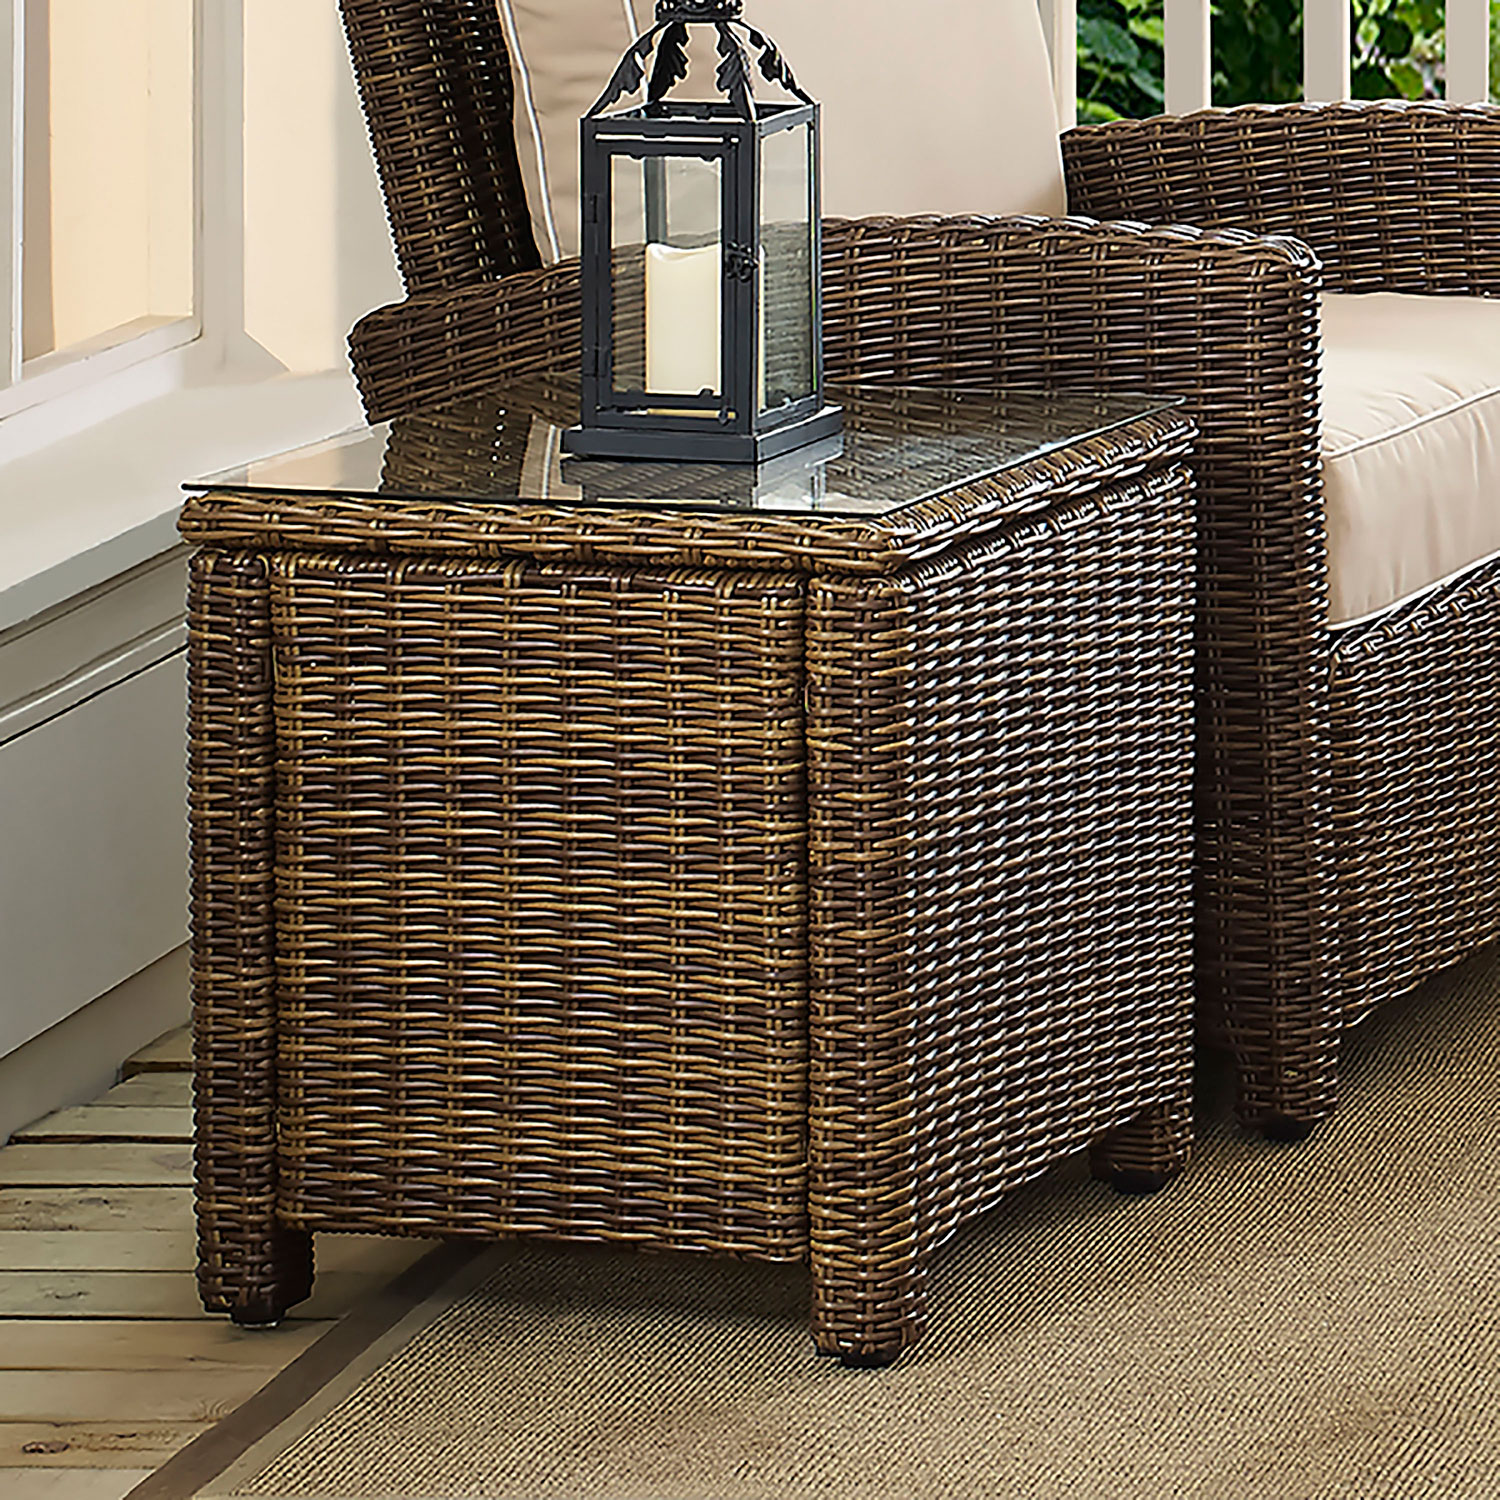 crosley furniture bradenton brown outdoor wicker rectangular side table hover zoom patio bar sets clearance stained glass standing lamp rod iron teak vancouver walnut nest tables